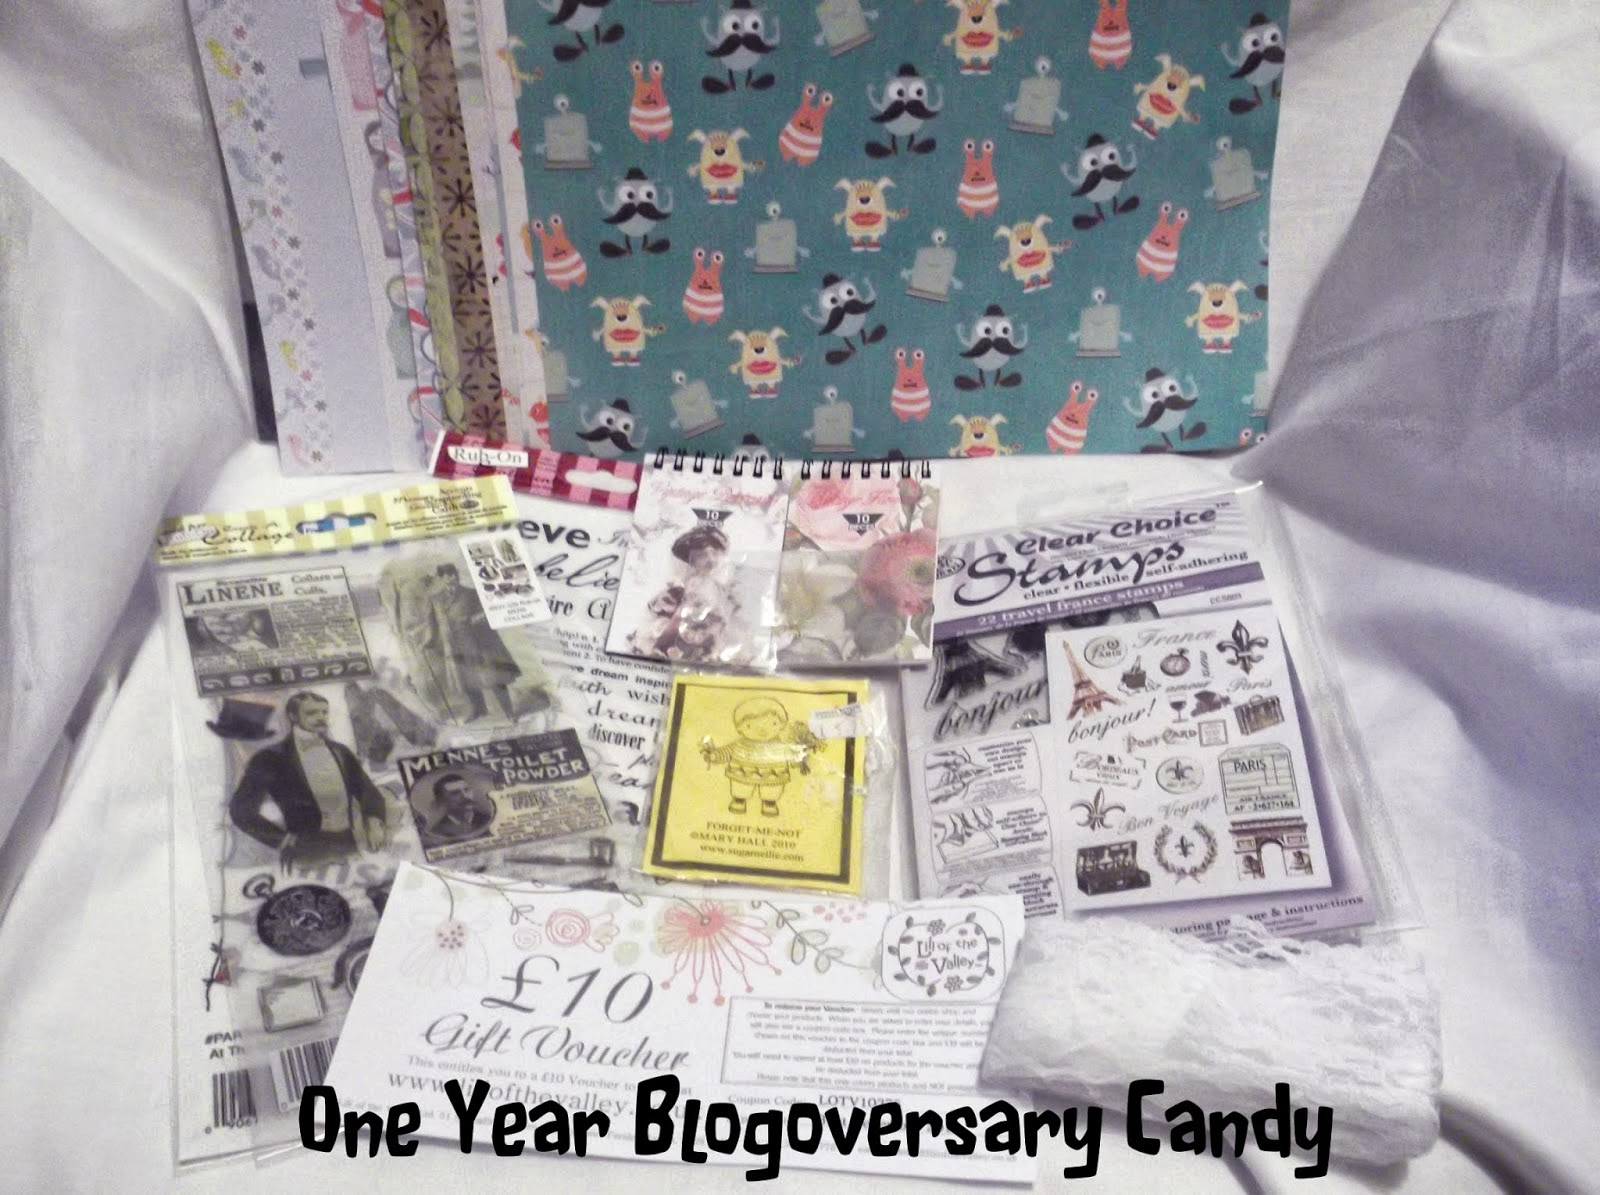 Sammy's Blogoversary Candy